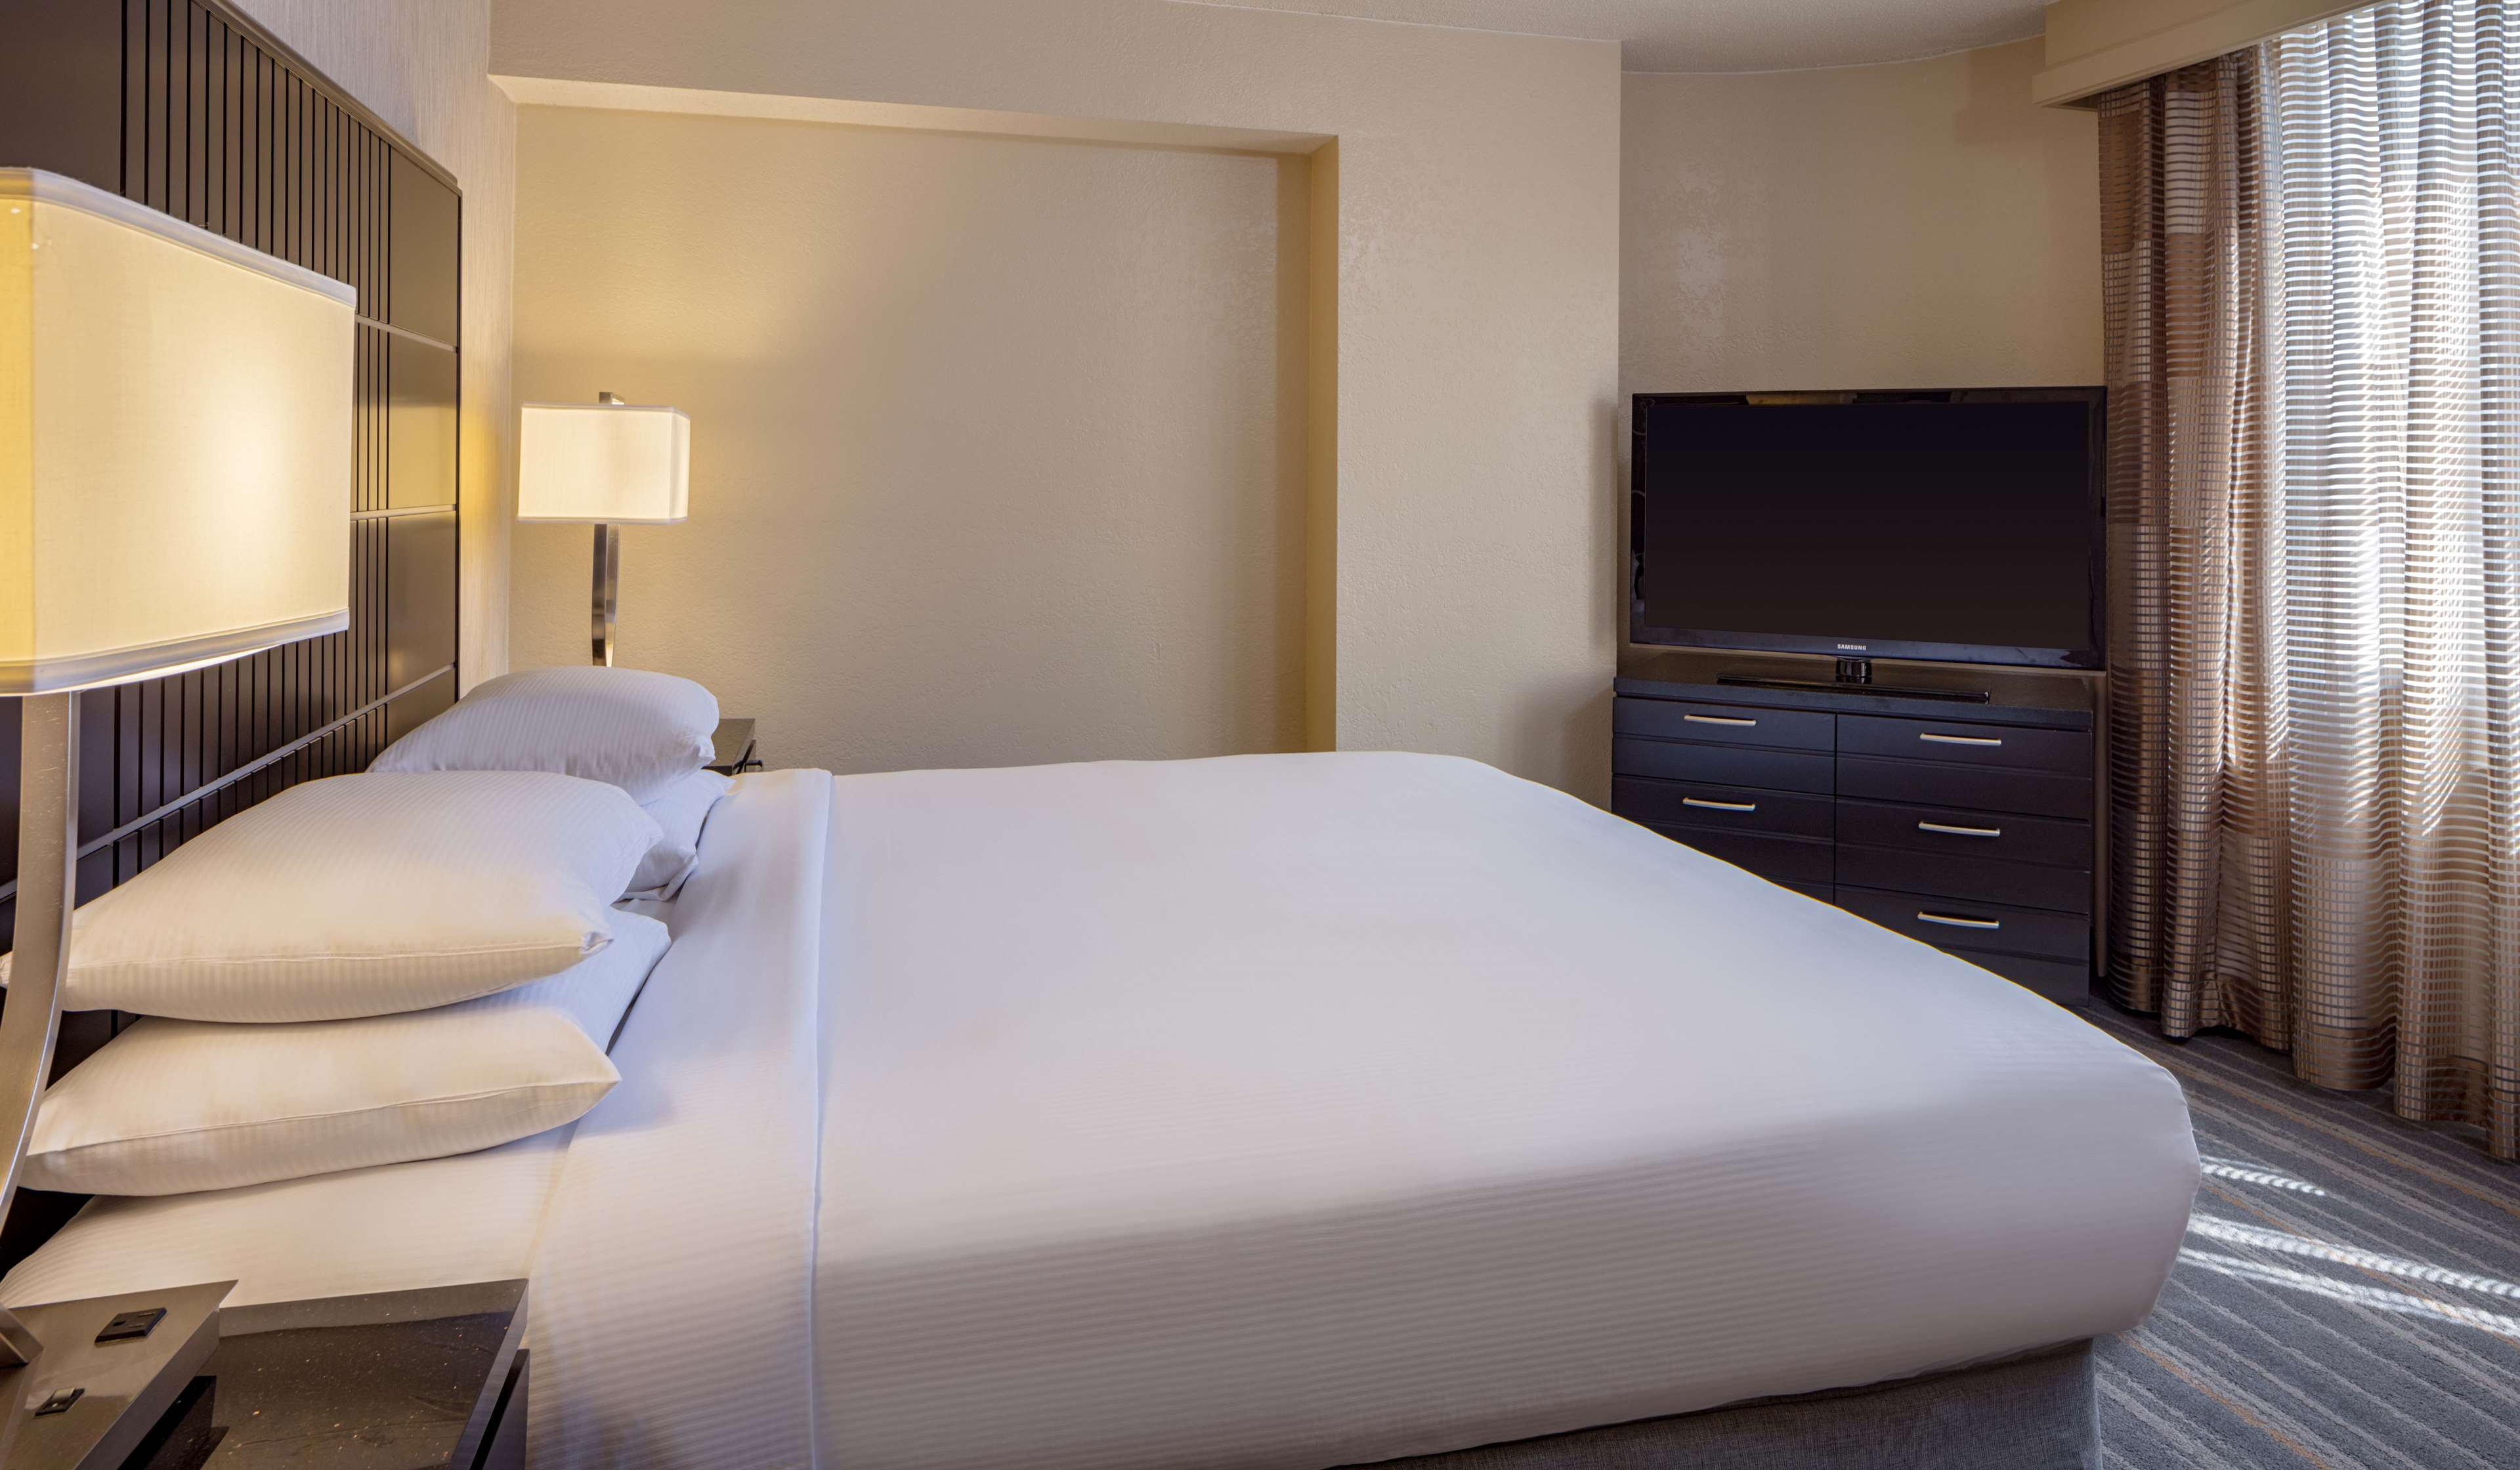 DoubleTree Suites by Hilton Hotel Minneapolis image 15